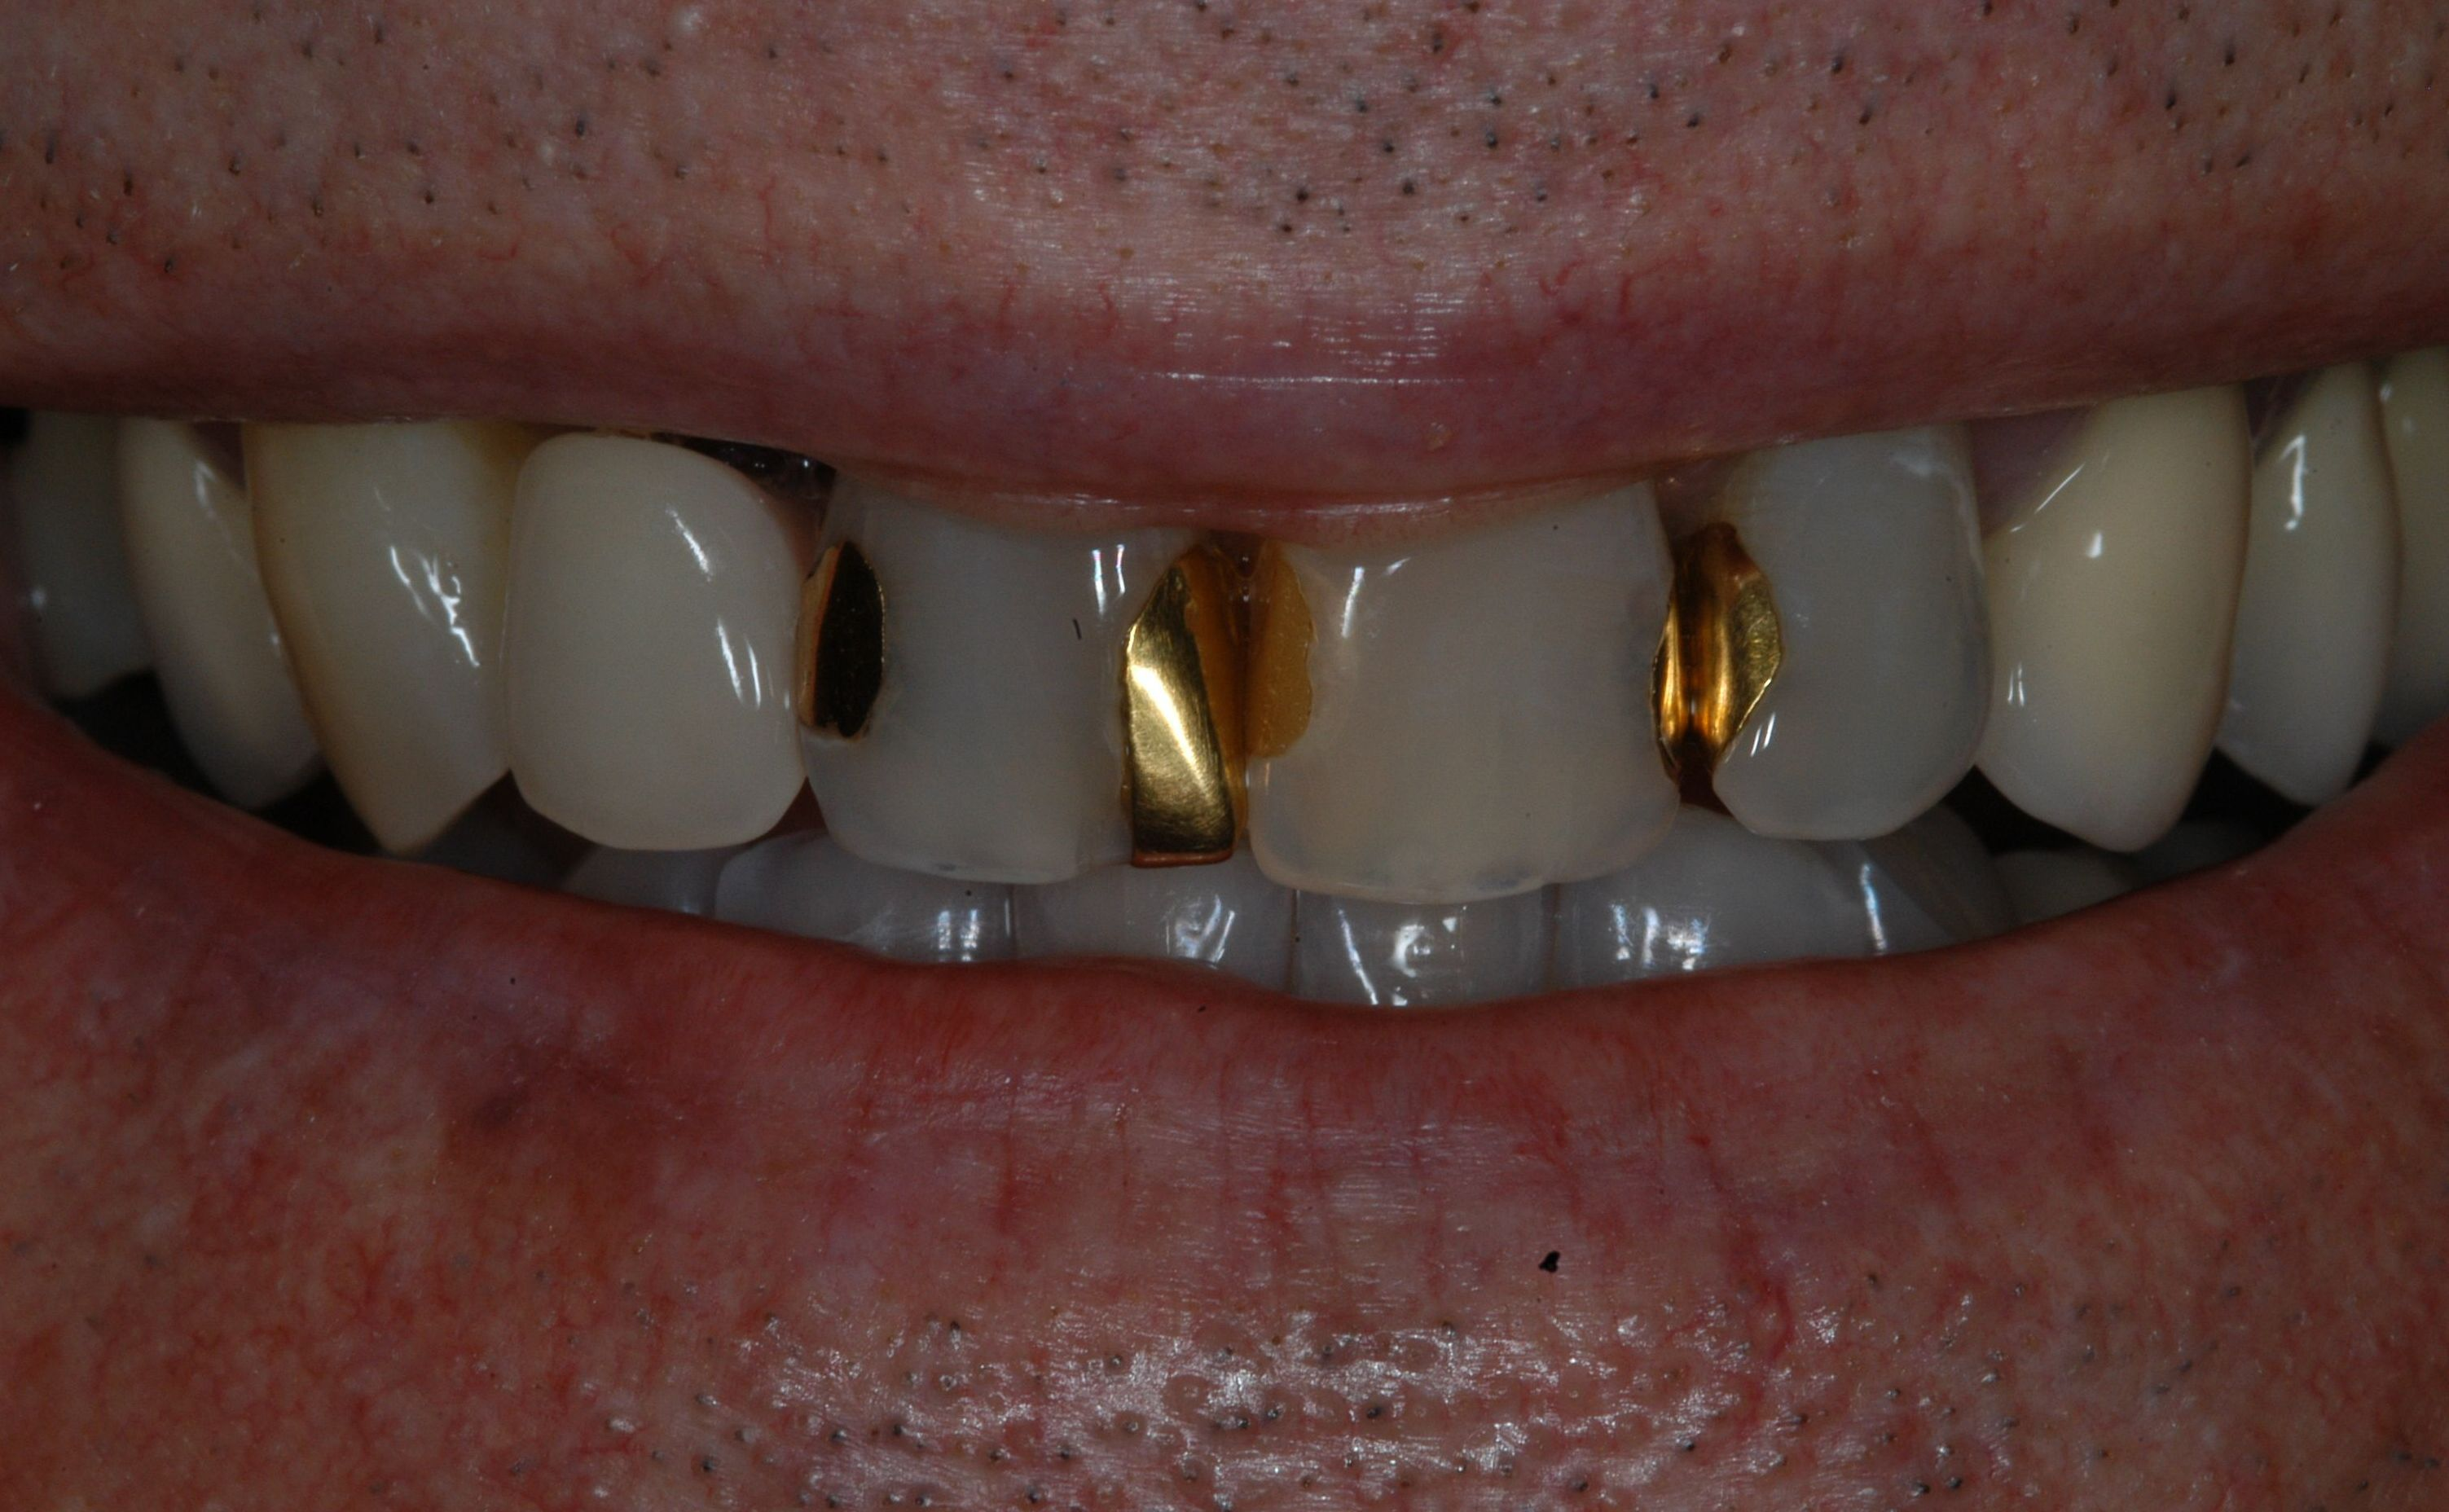 Old fillings and gold teeth